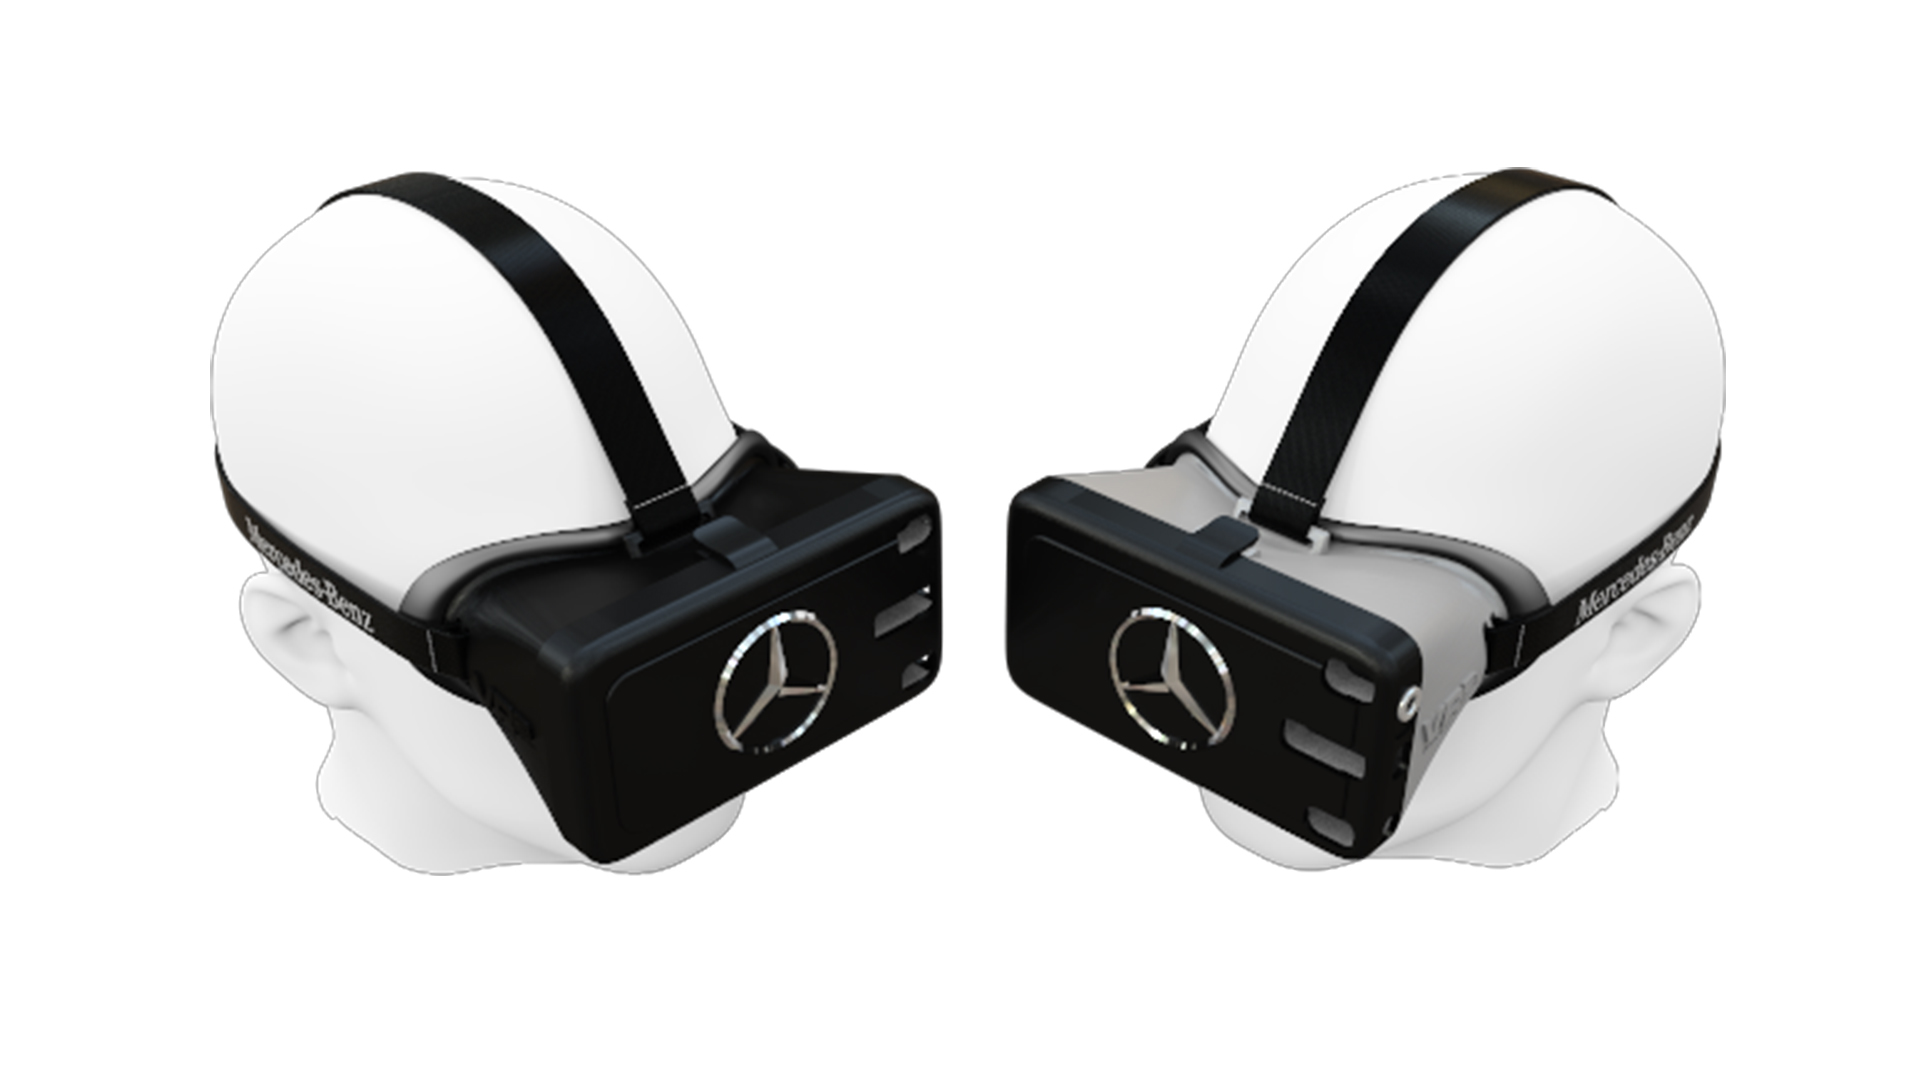 Mercedes-Benz Branded Virtual Reality Headsets